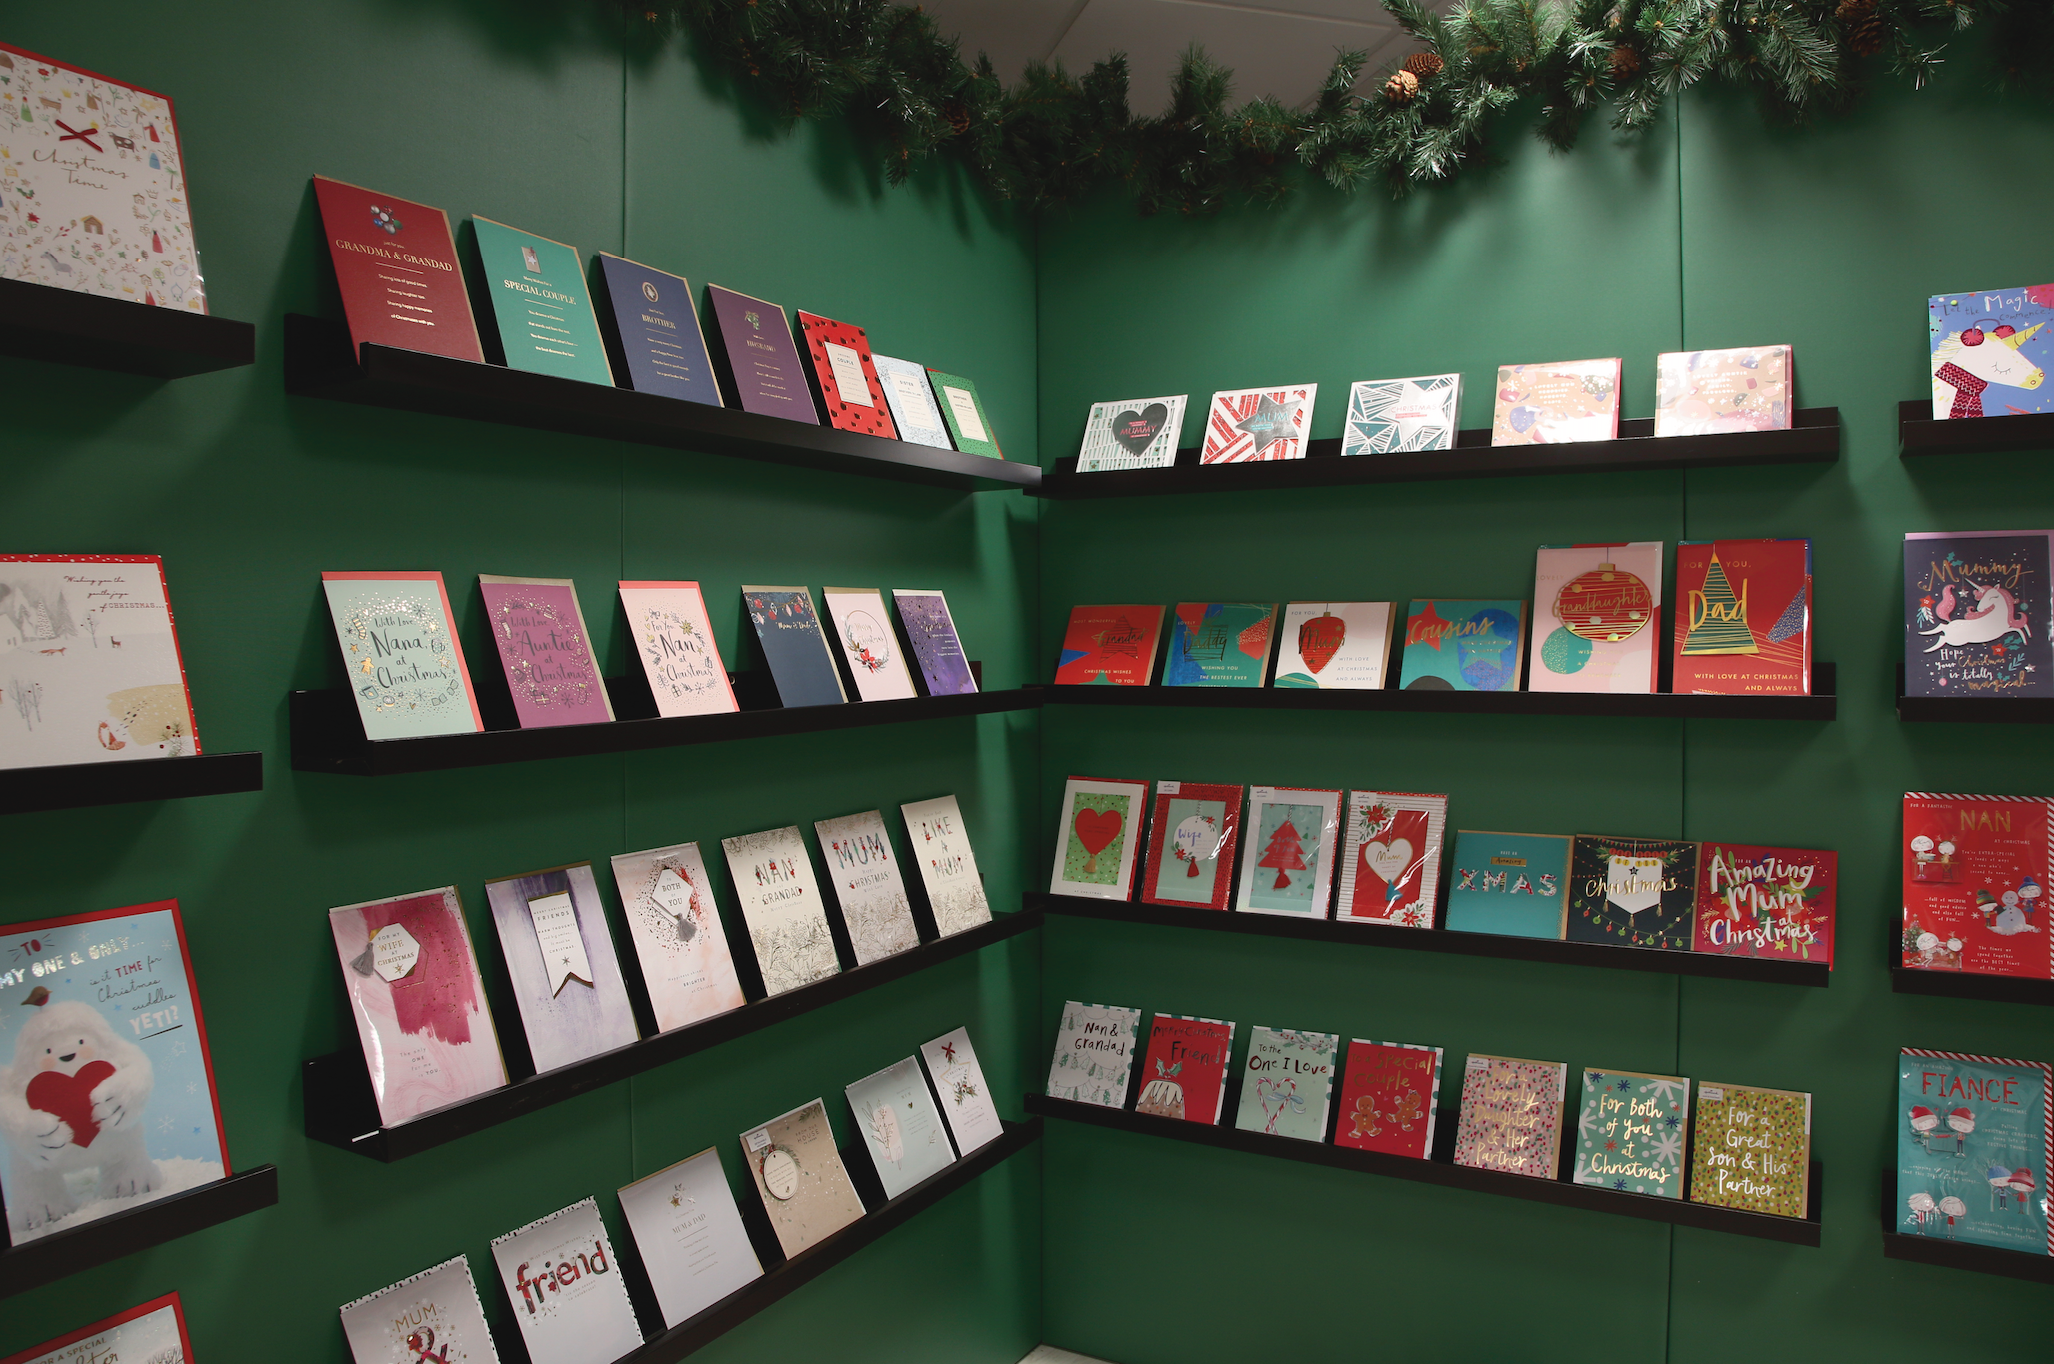 Above: A selection of new Christmas designs from Hallmark which shows a simplified approach to card sizes.